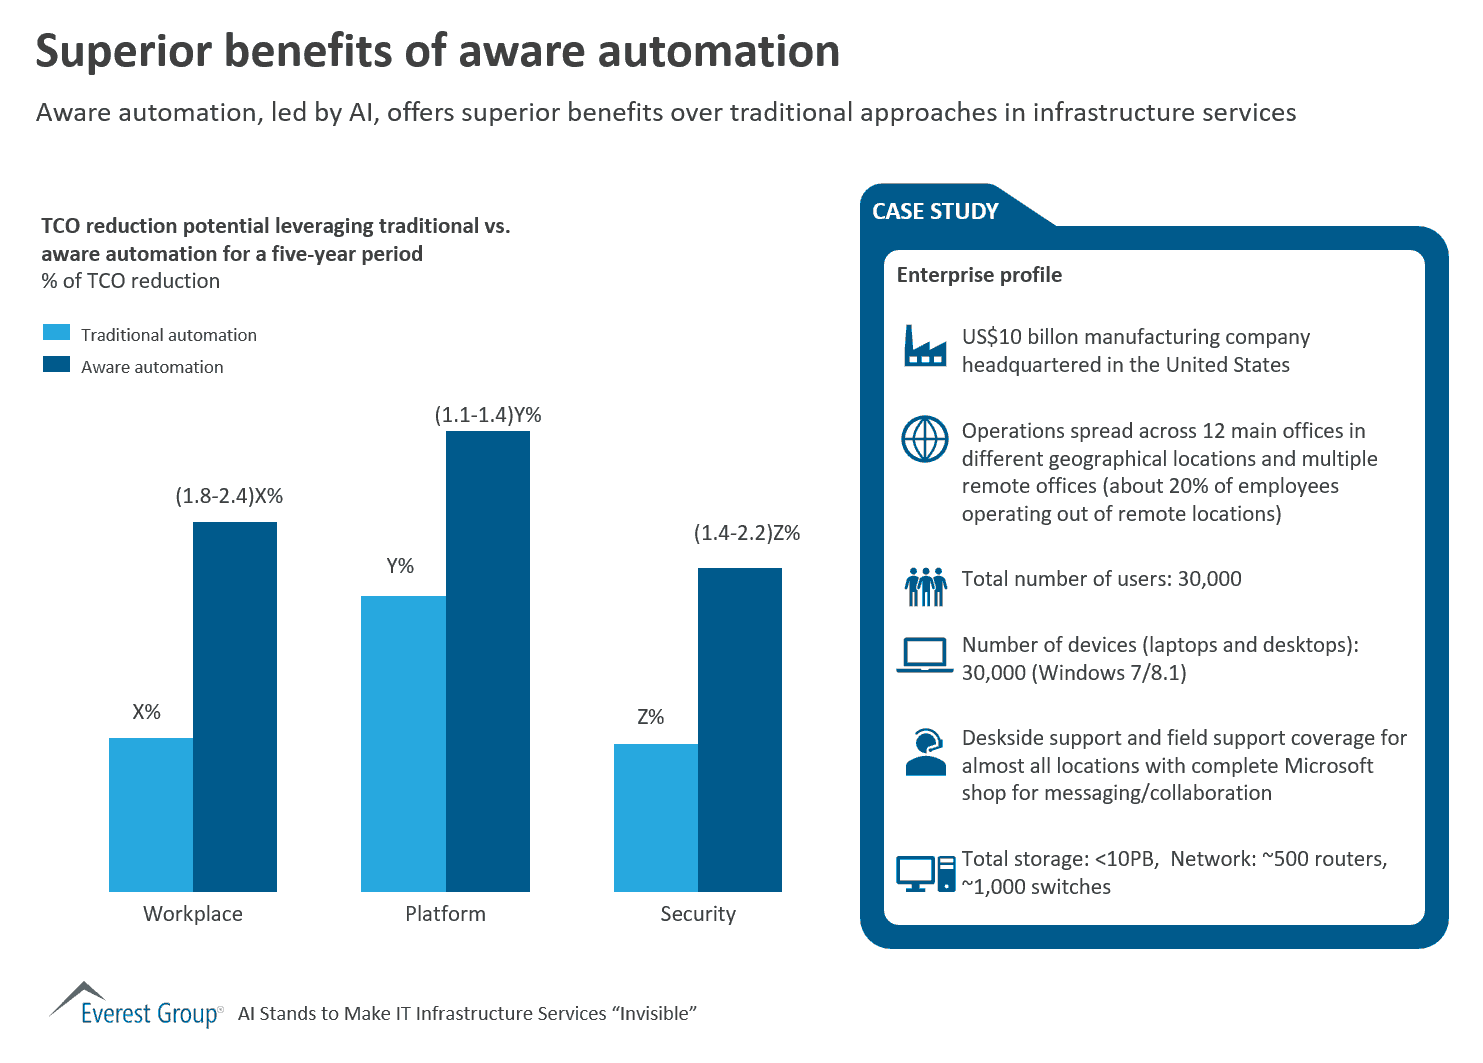 Superior benefits of aware automation